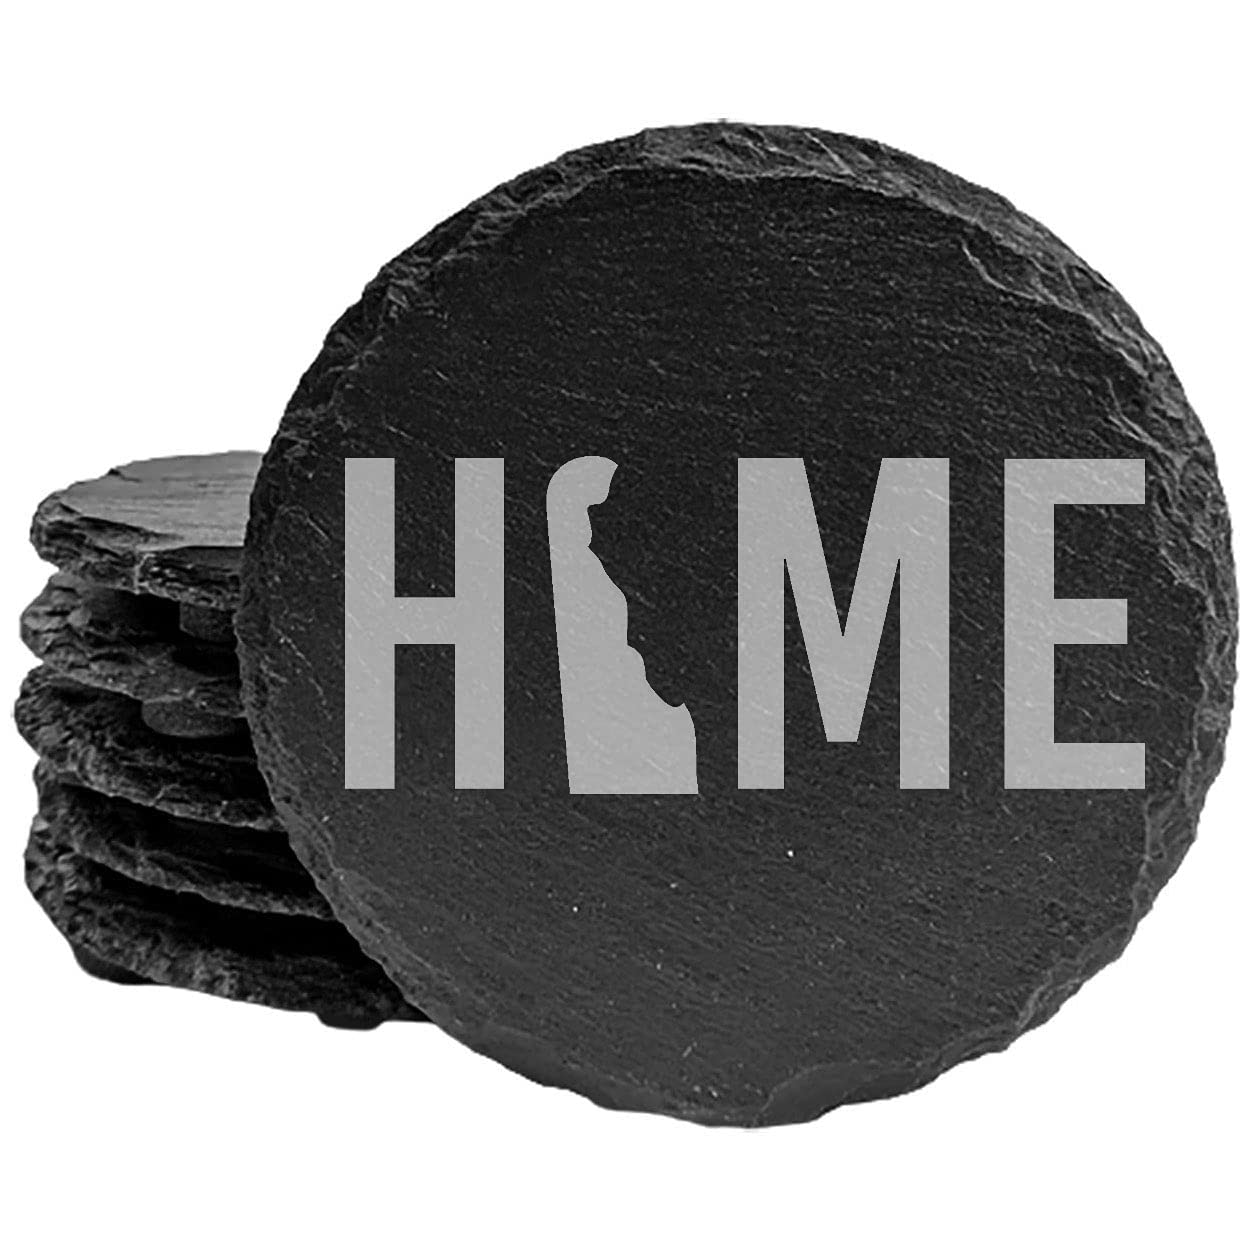 Delaware Home Coasters - Round of Slate Factory outlet set Portland Mall 8